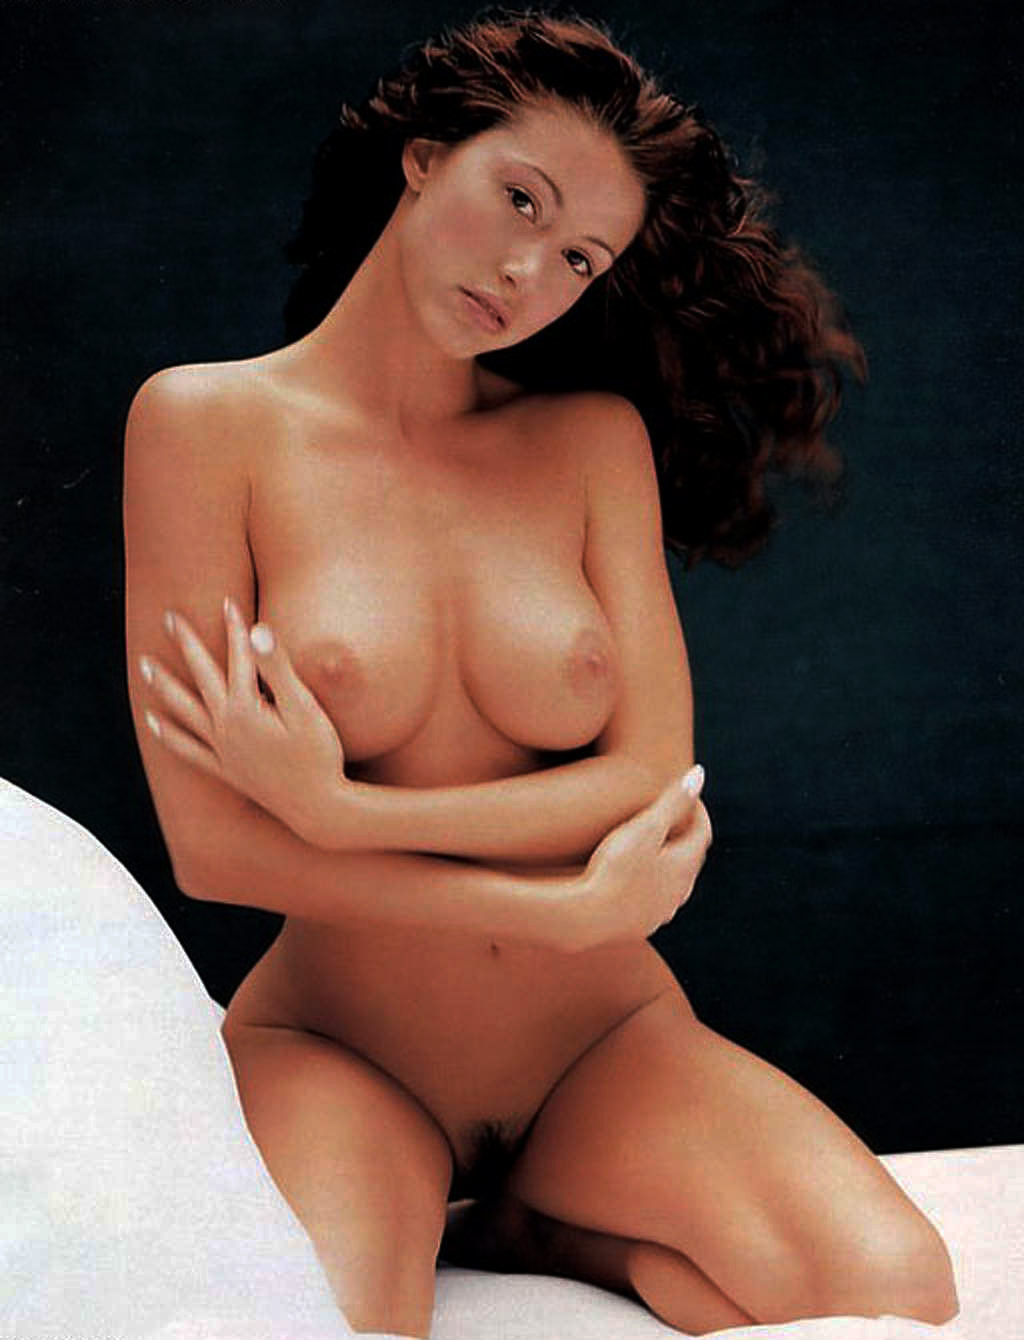 American Pie Nadia Boobs shannon elizabeth nude - 25 pictures: rating 9.01/10